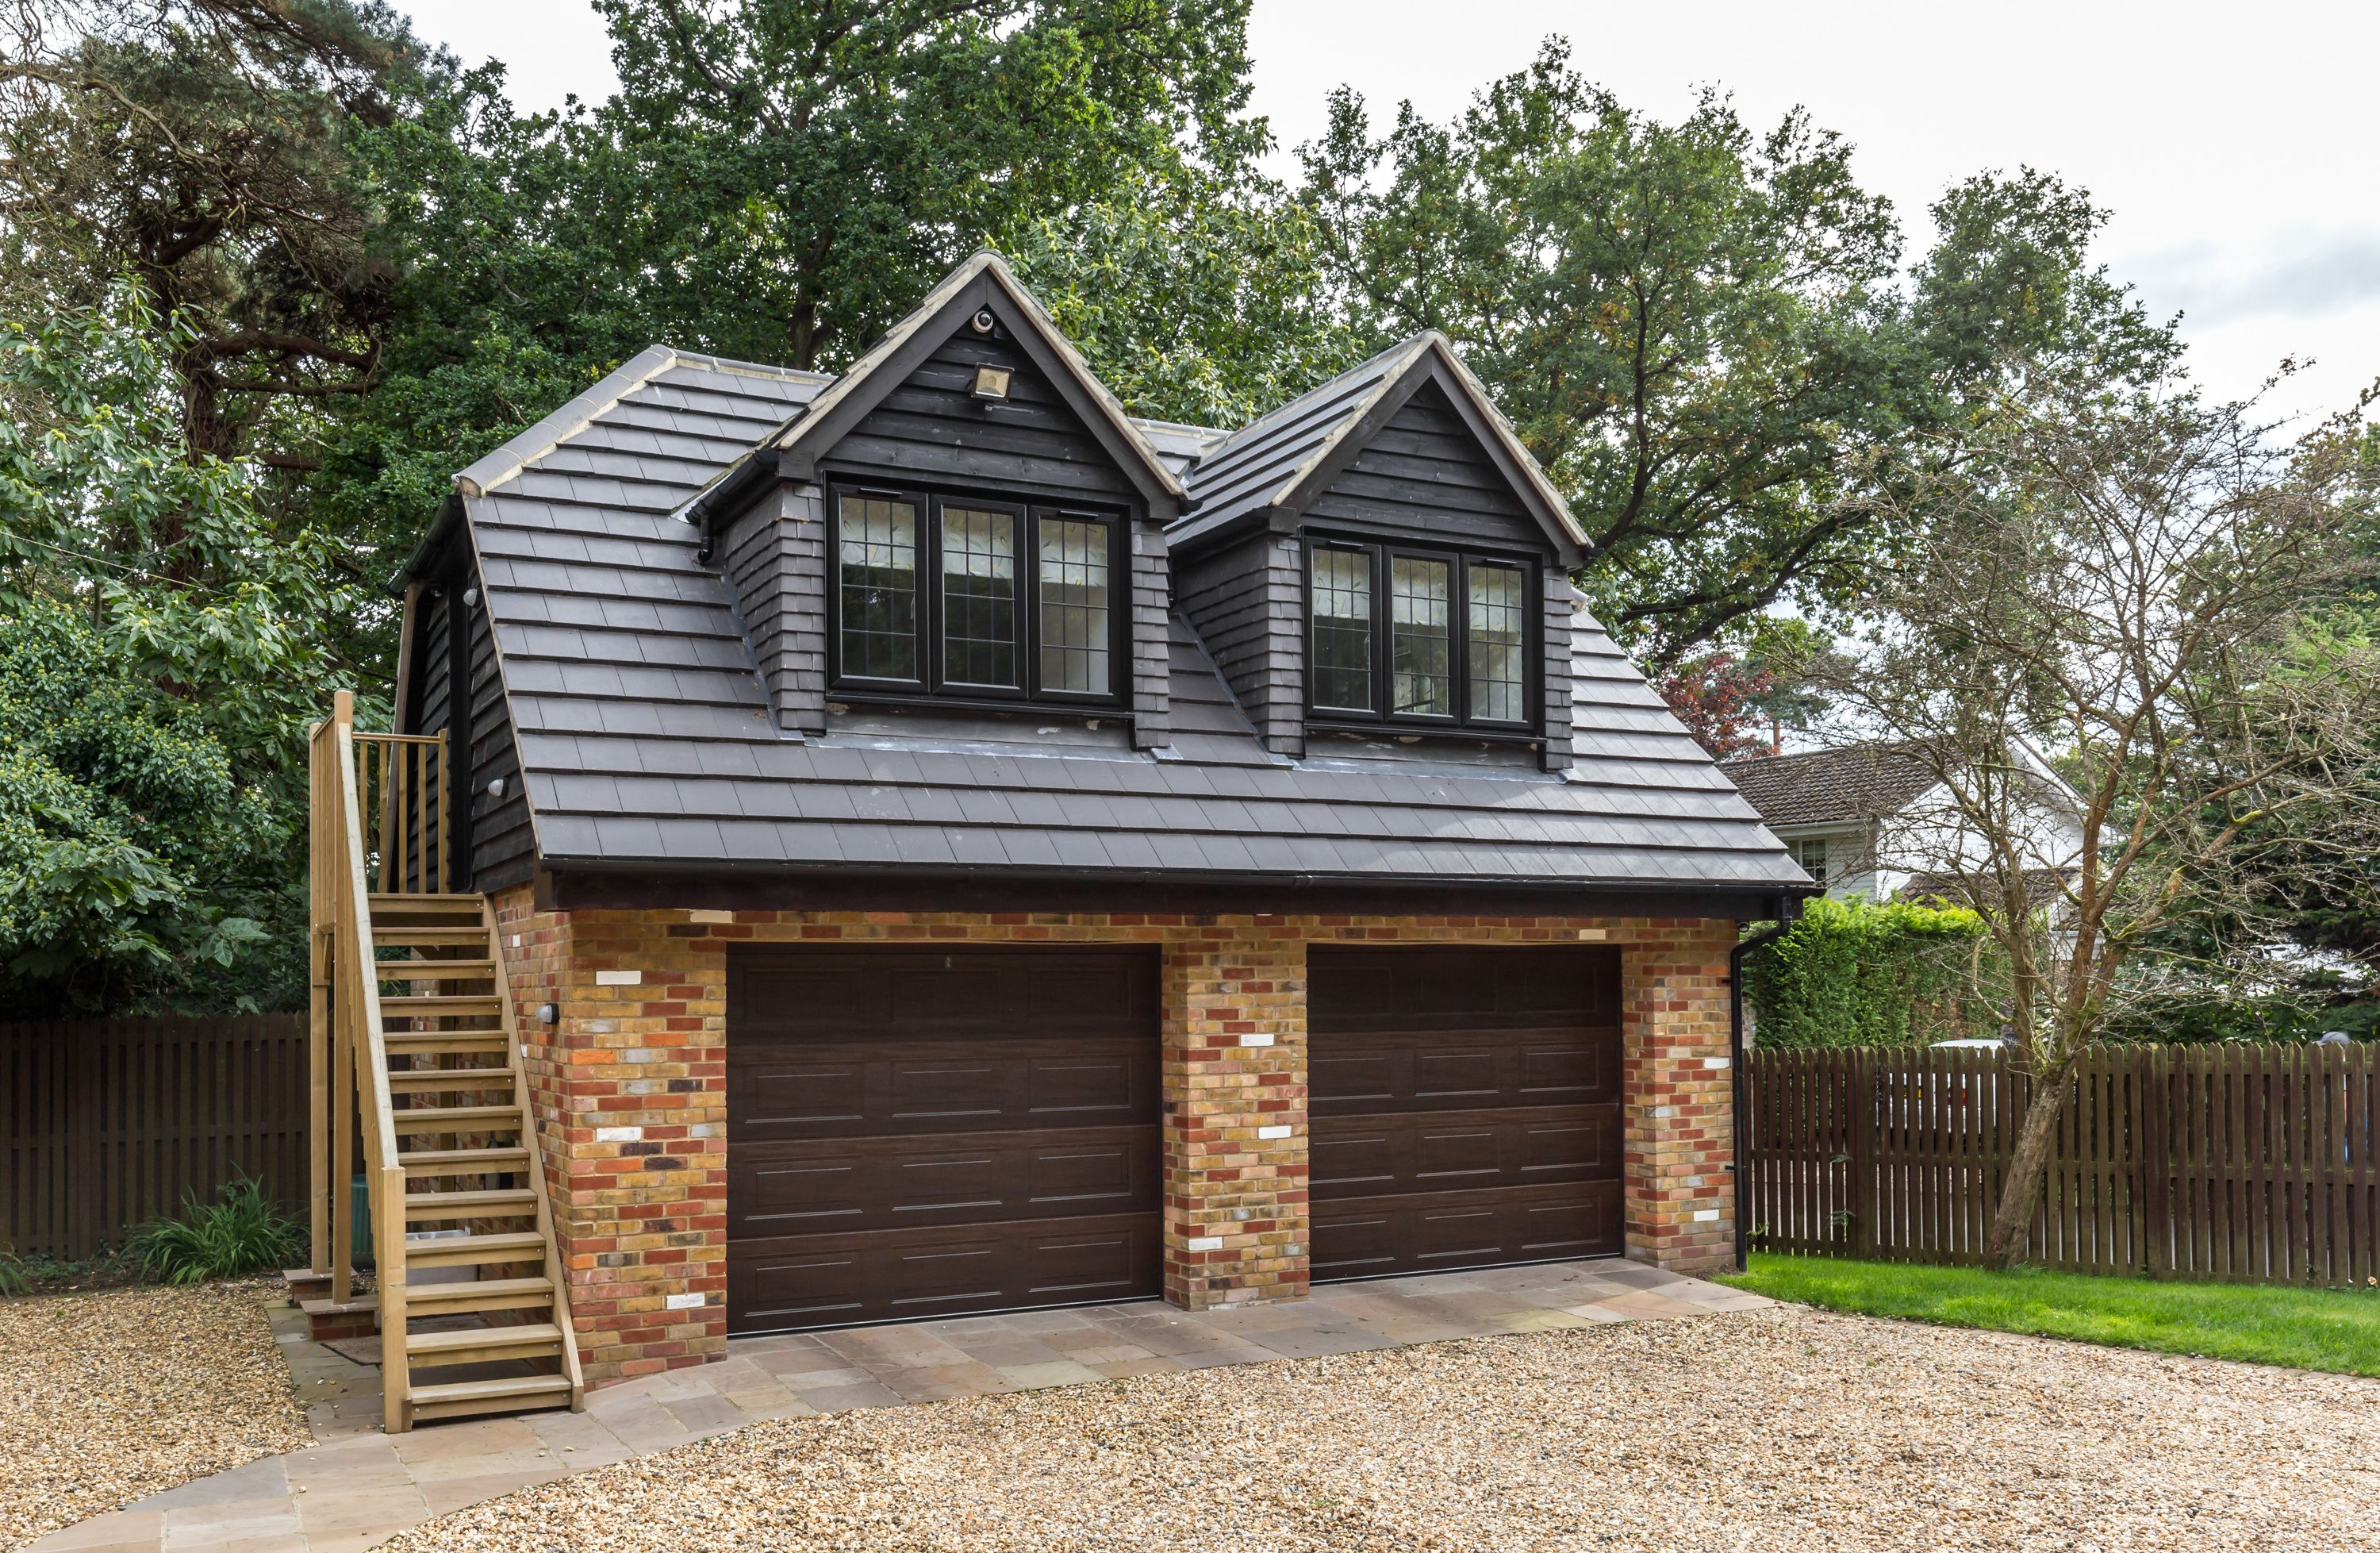 Best Traditional Double Garage With Room In Loft Space 640 x 480